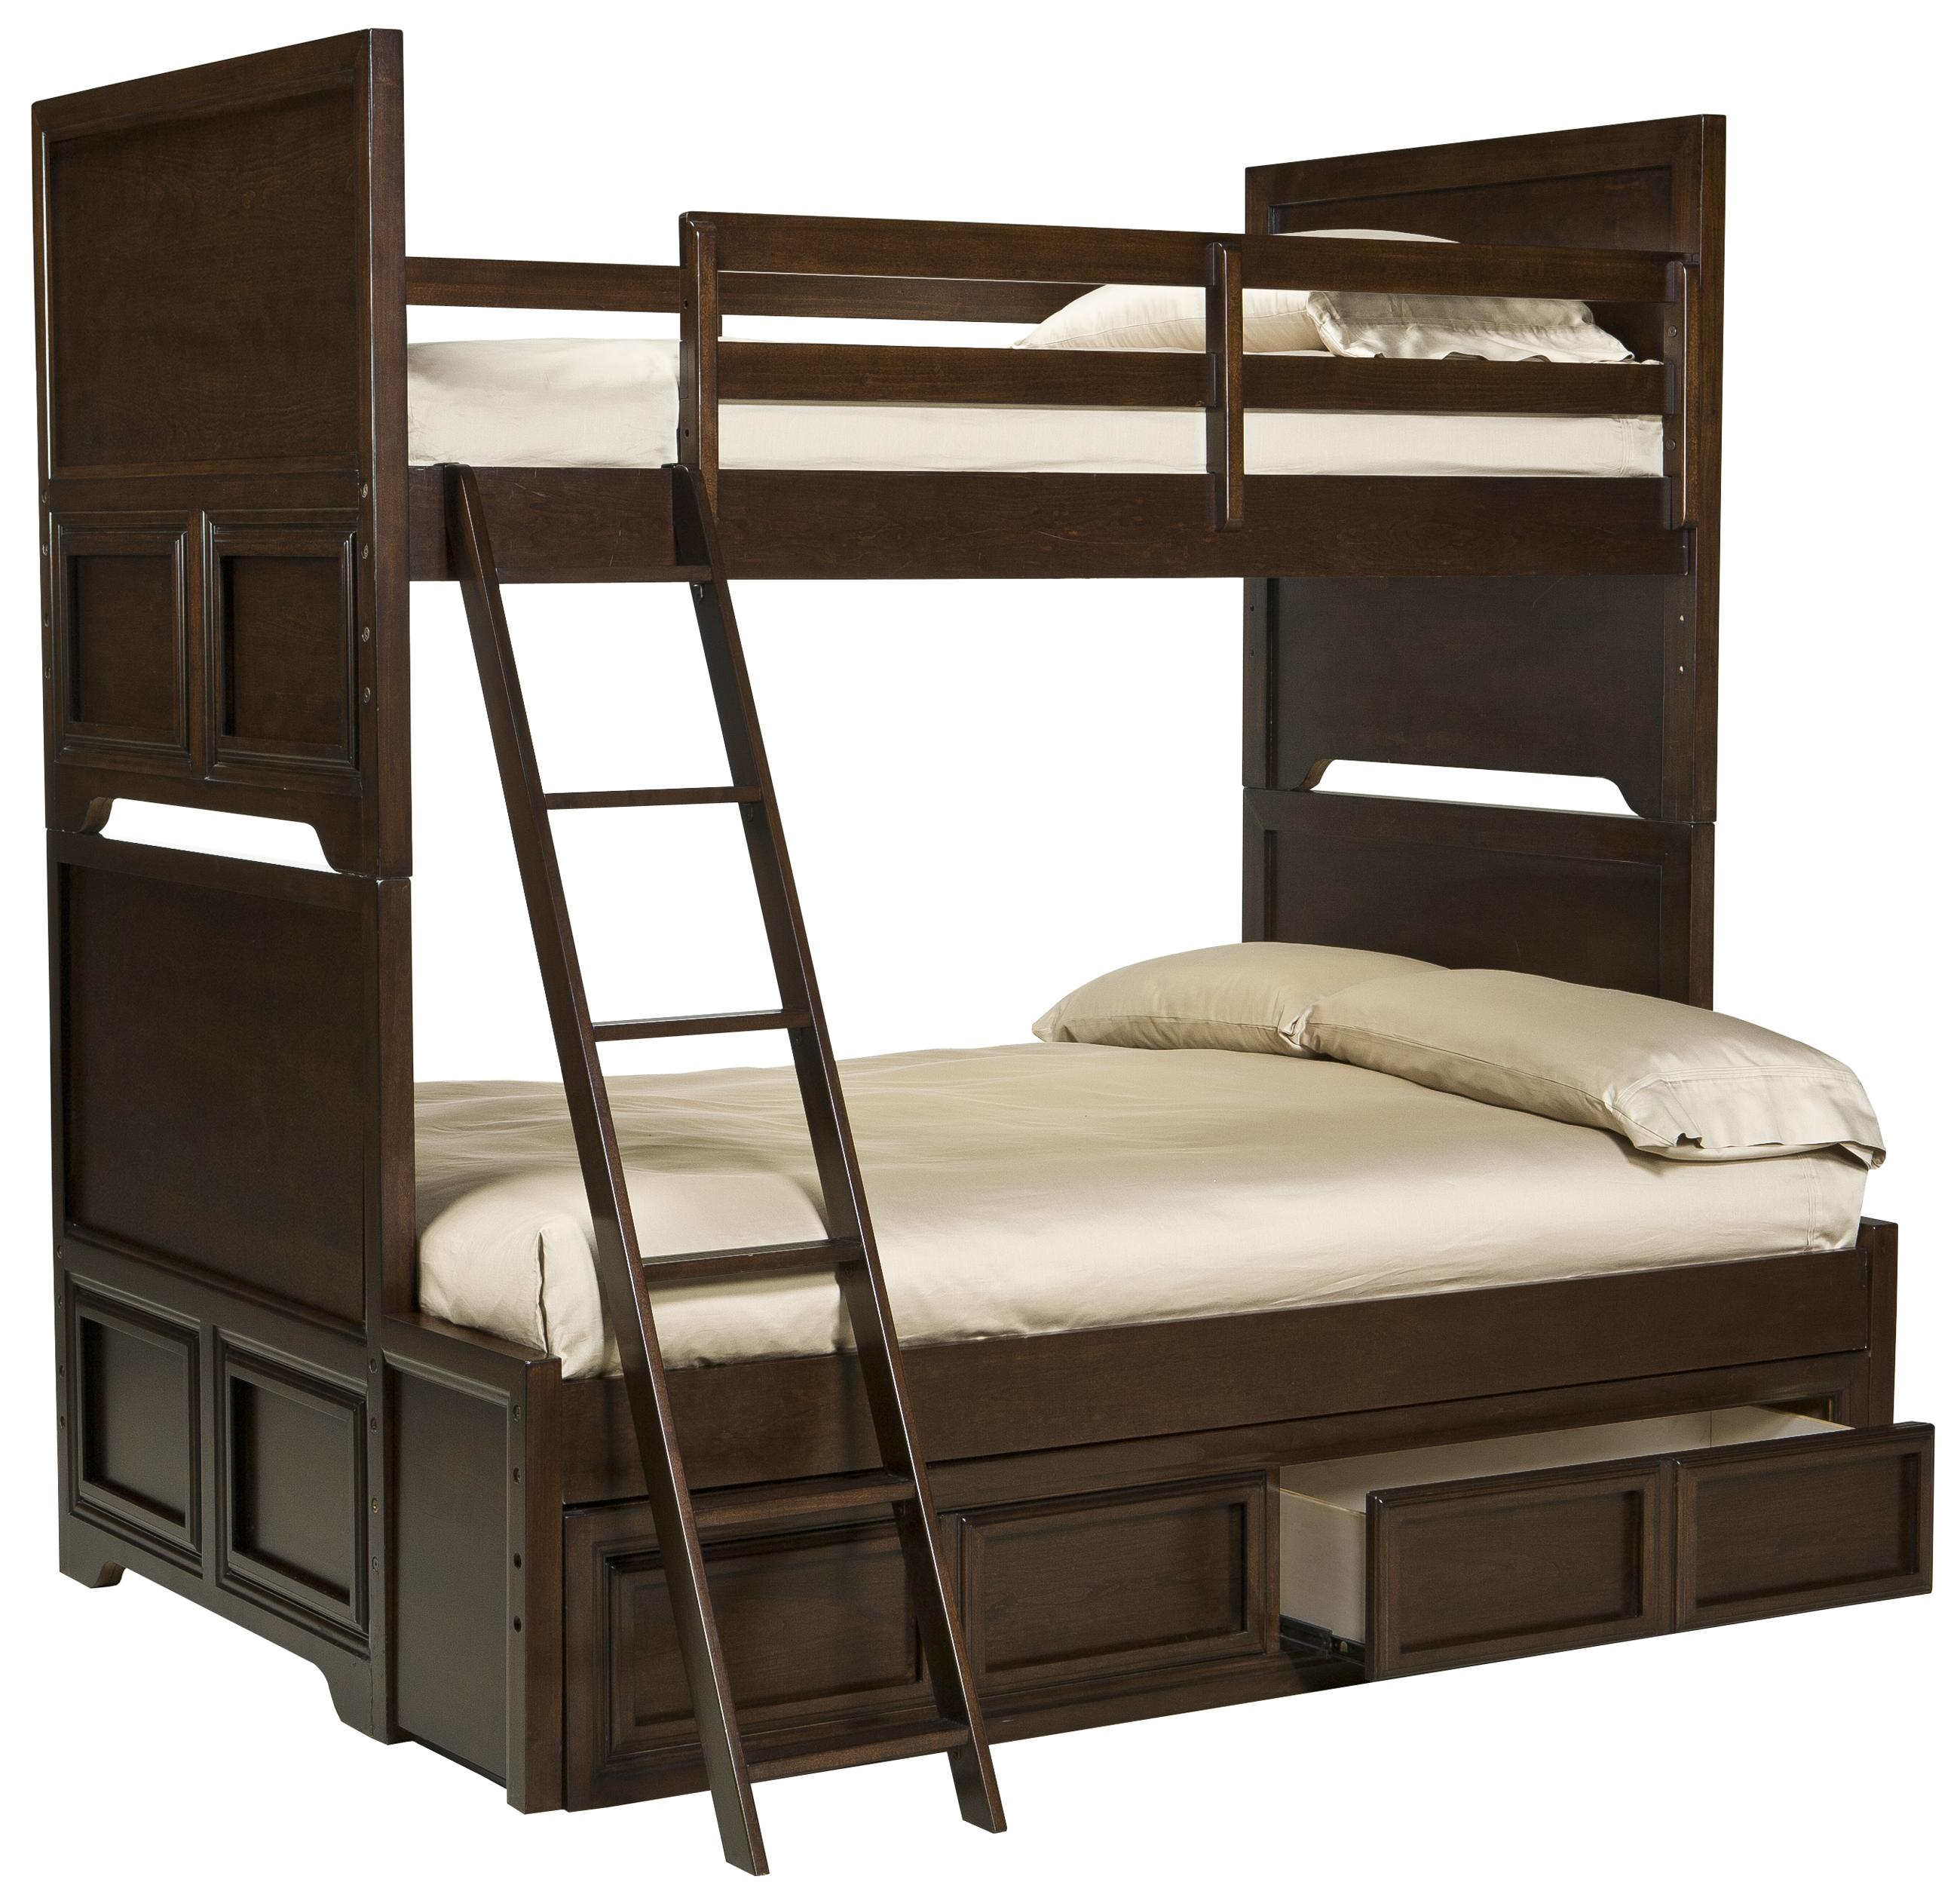 Legacy Classic Kids Benchmark Twin over Full Bunk Bed with Storage Drawer - Item Number: 2970-Twin-over-Full+9300